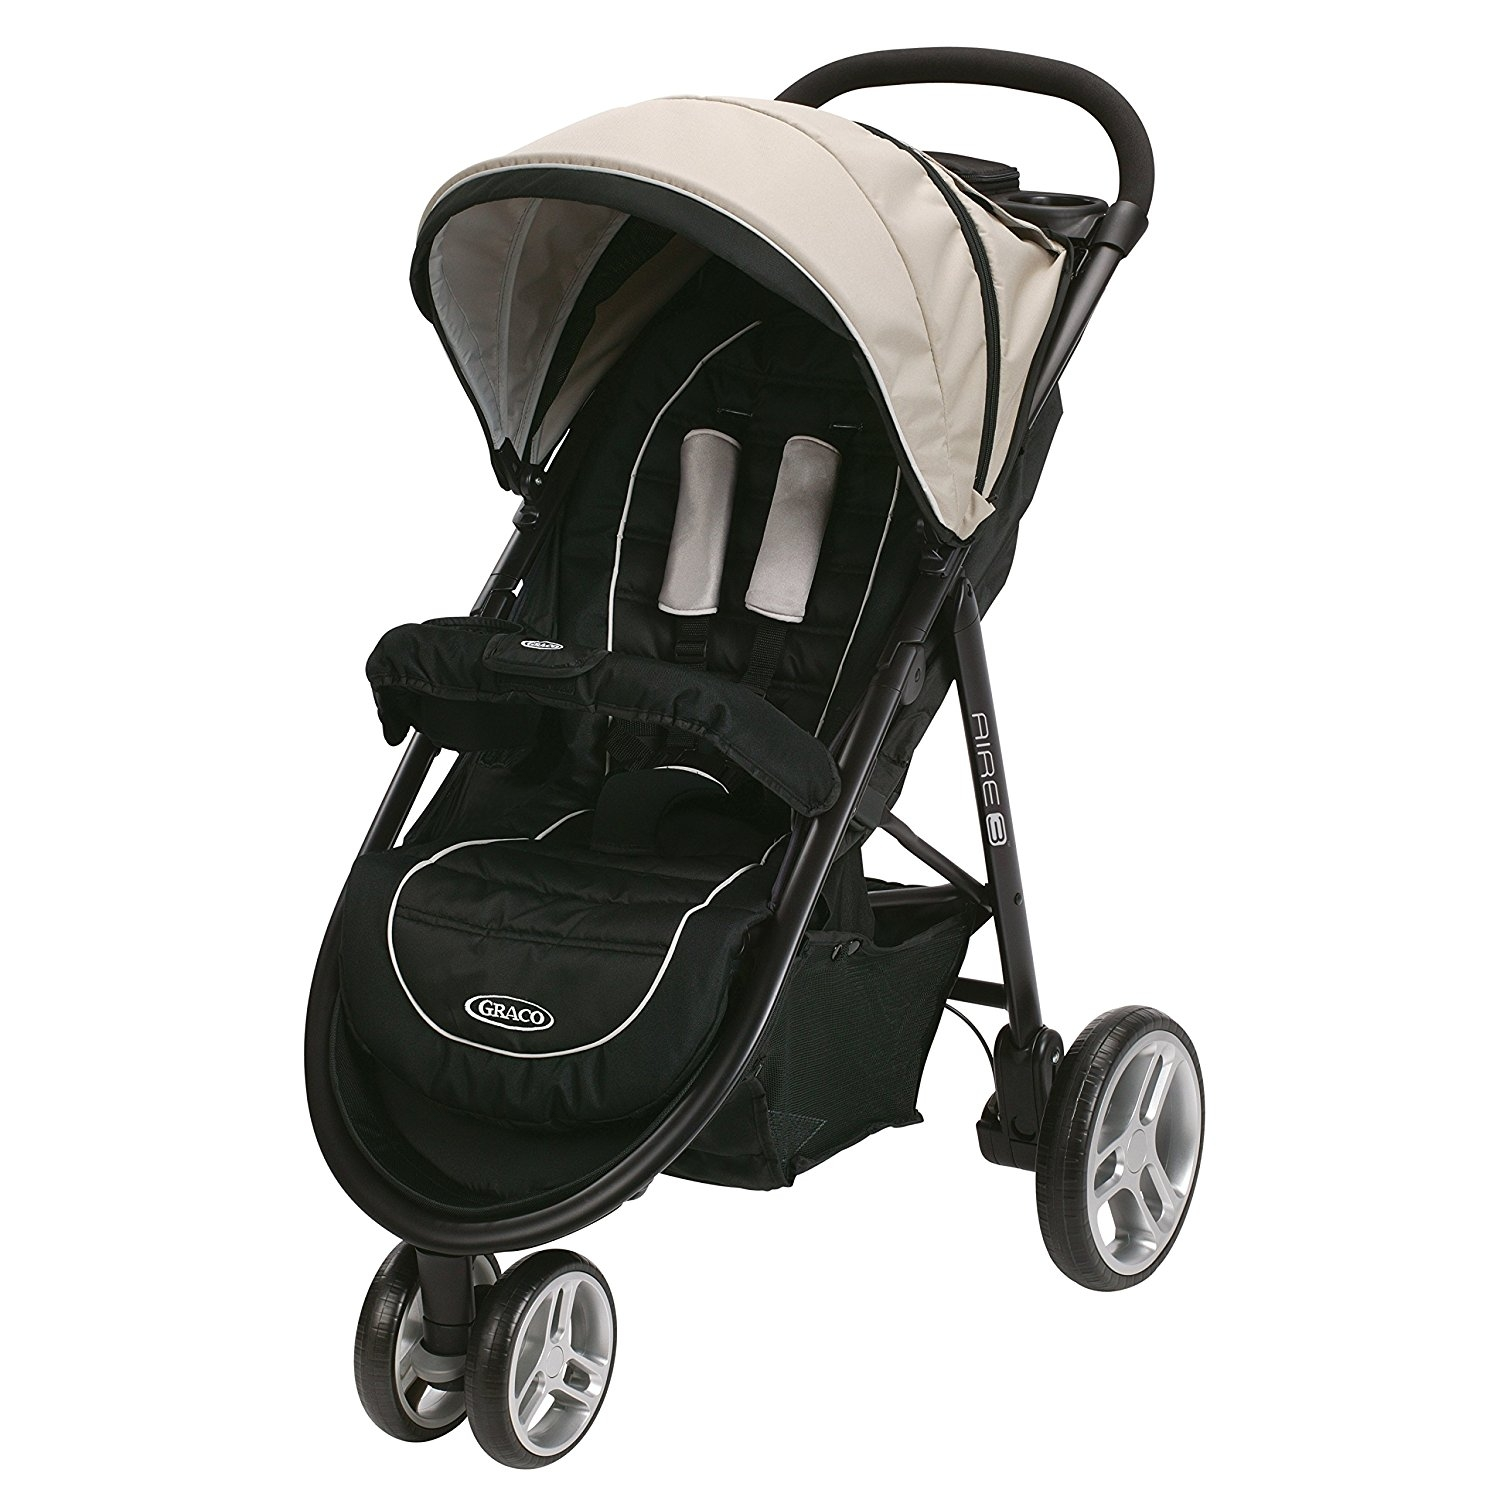 Graco Aire3 Click Connect Stroller, Pierce